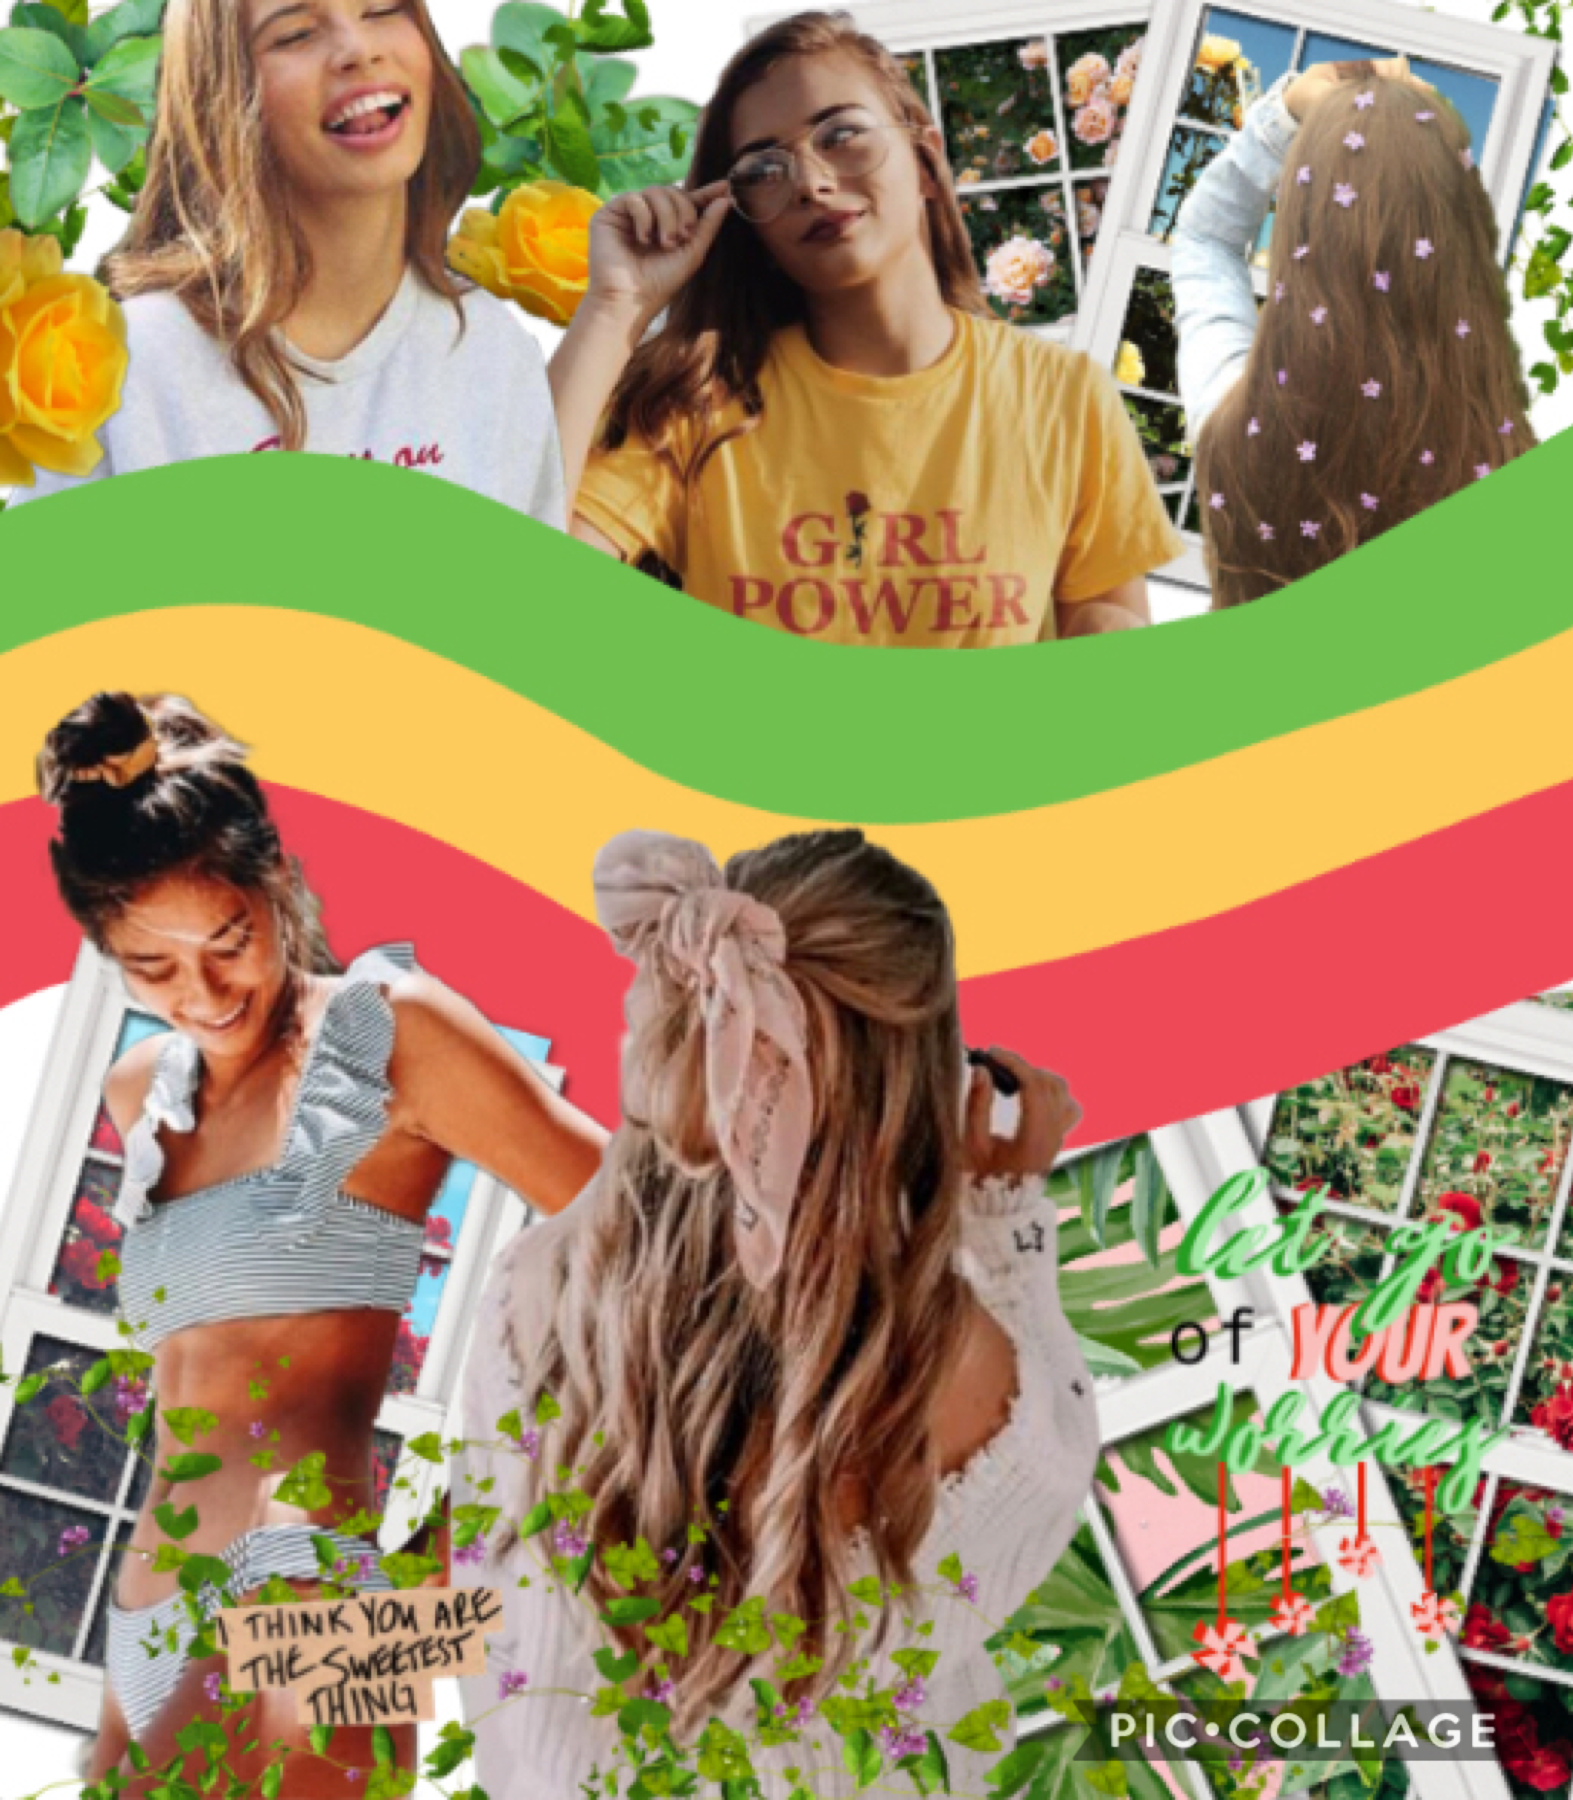 ☀️💎tap!☀️💎 Inspired by xXxdreamingxXx!!! She is so good at these like this took me forever! How does she do it?!? Anyways this is the first time I've made anything this complex so tell me what u think!